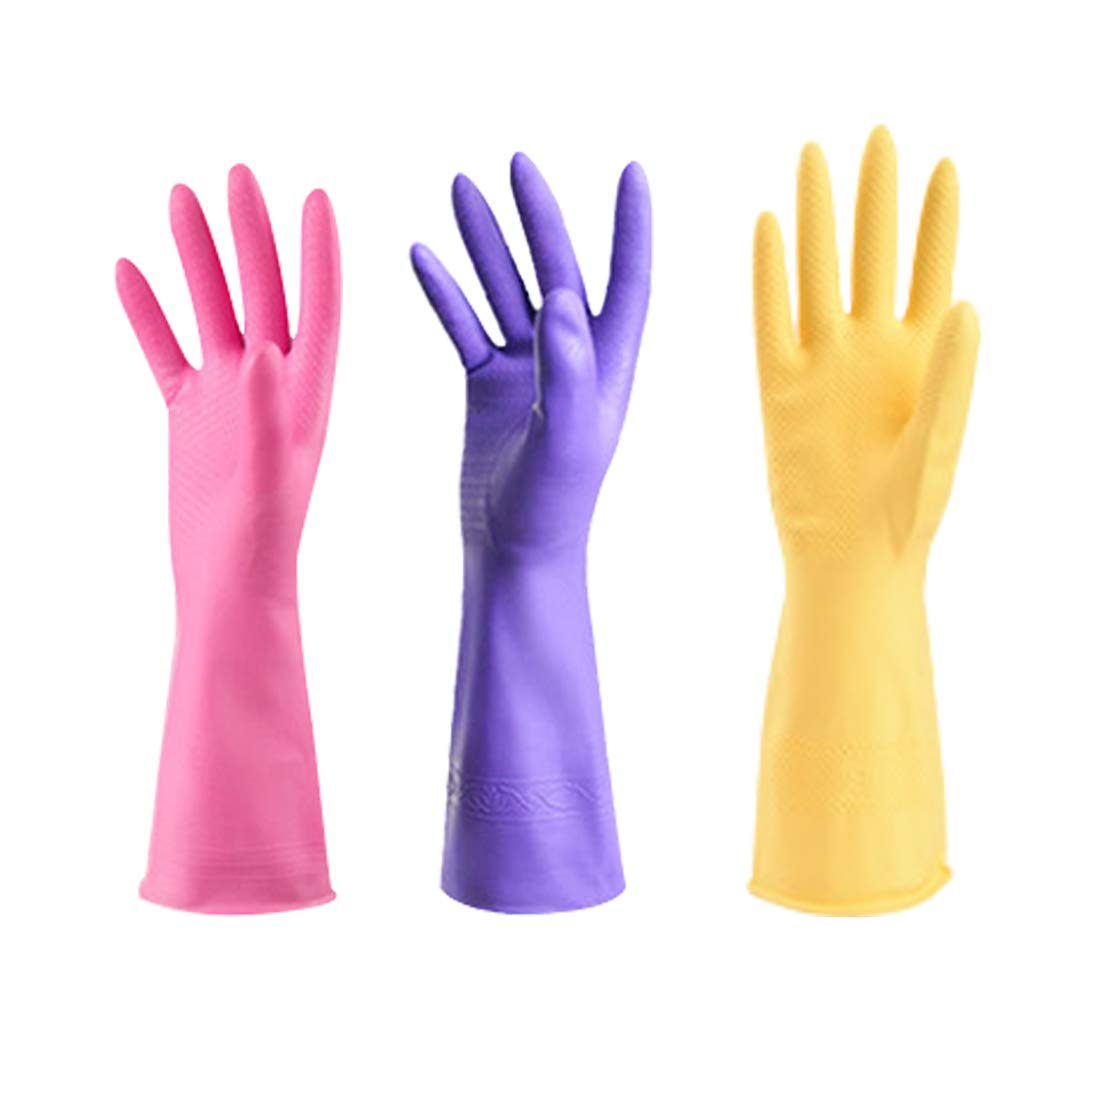 LLESS Rubber Gloves Reuseable Kitchen Cleaning Gloves Heat Resisting Non-Slip Soft Cotton Flock Lining Great Kitchen Cleaning Tools Medium 3 Packs